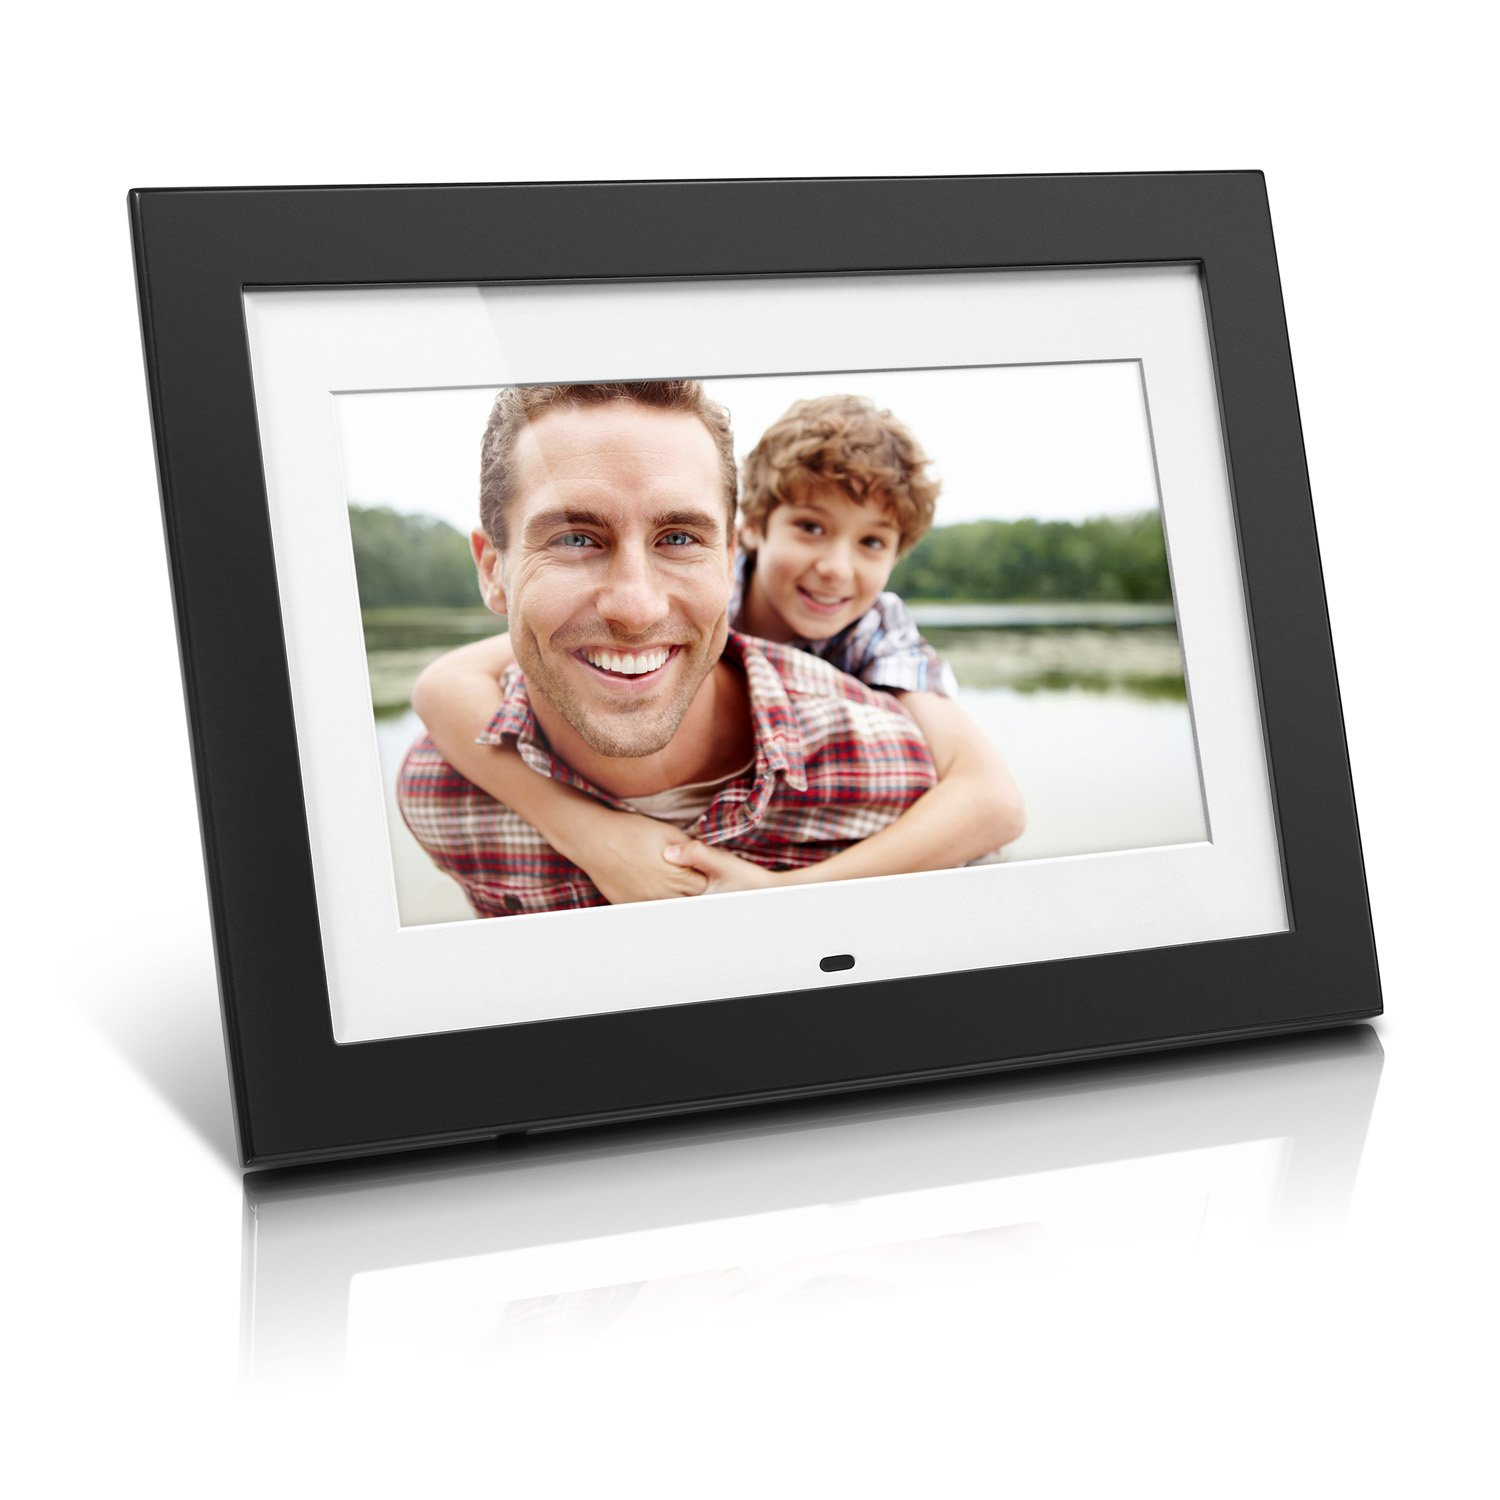 Aluratek ADMPF410T 10' Digital Photo Frame with 4GB Built-In, Music & Video Support, Black (White Matting), Auto On-Off, Calendar, Remote